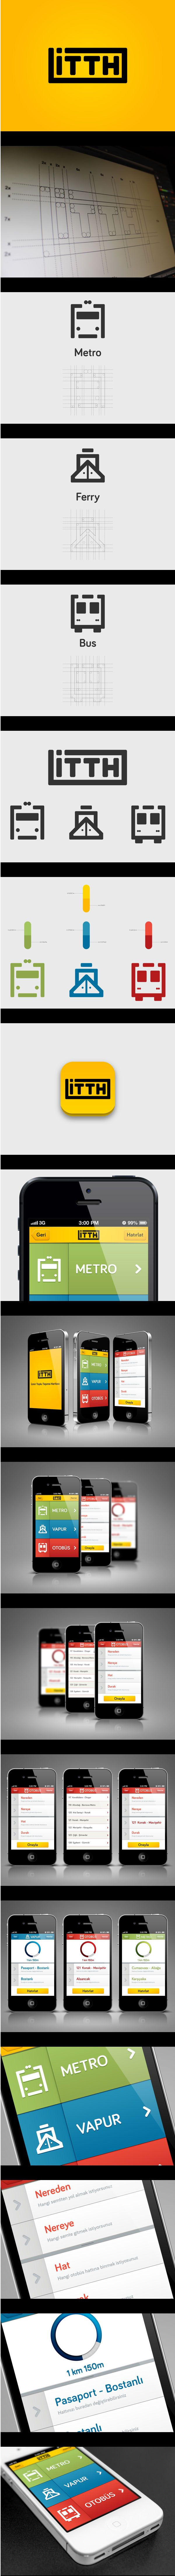 "Public Transportation iPhone App on Behance *** ""İTTH"" stands for ""İzmir Toplu Taşıma Haritası"" (Izmir Public Transportation Map). Its an application to help Izmir citizens and tourists in Public Transportation. It shows the shortest route of where you want to go in Izmir. It also lets you know approximately when your transport (bus, subway, ferry) will be in your stop."